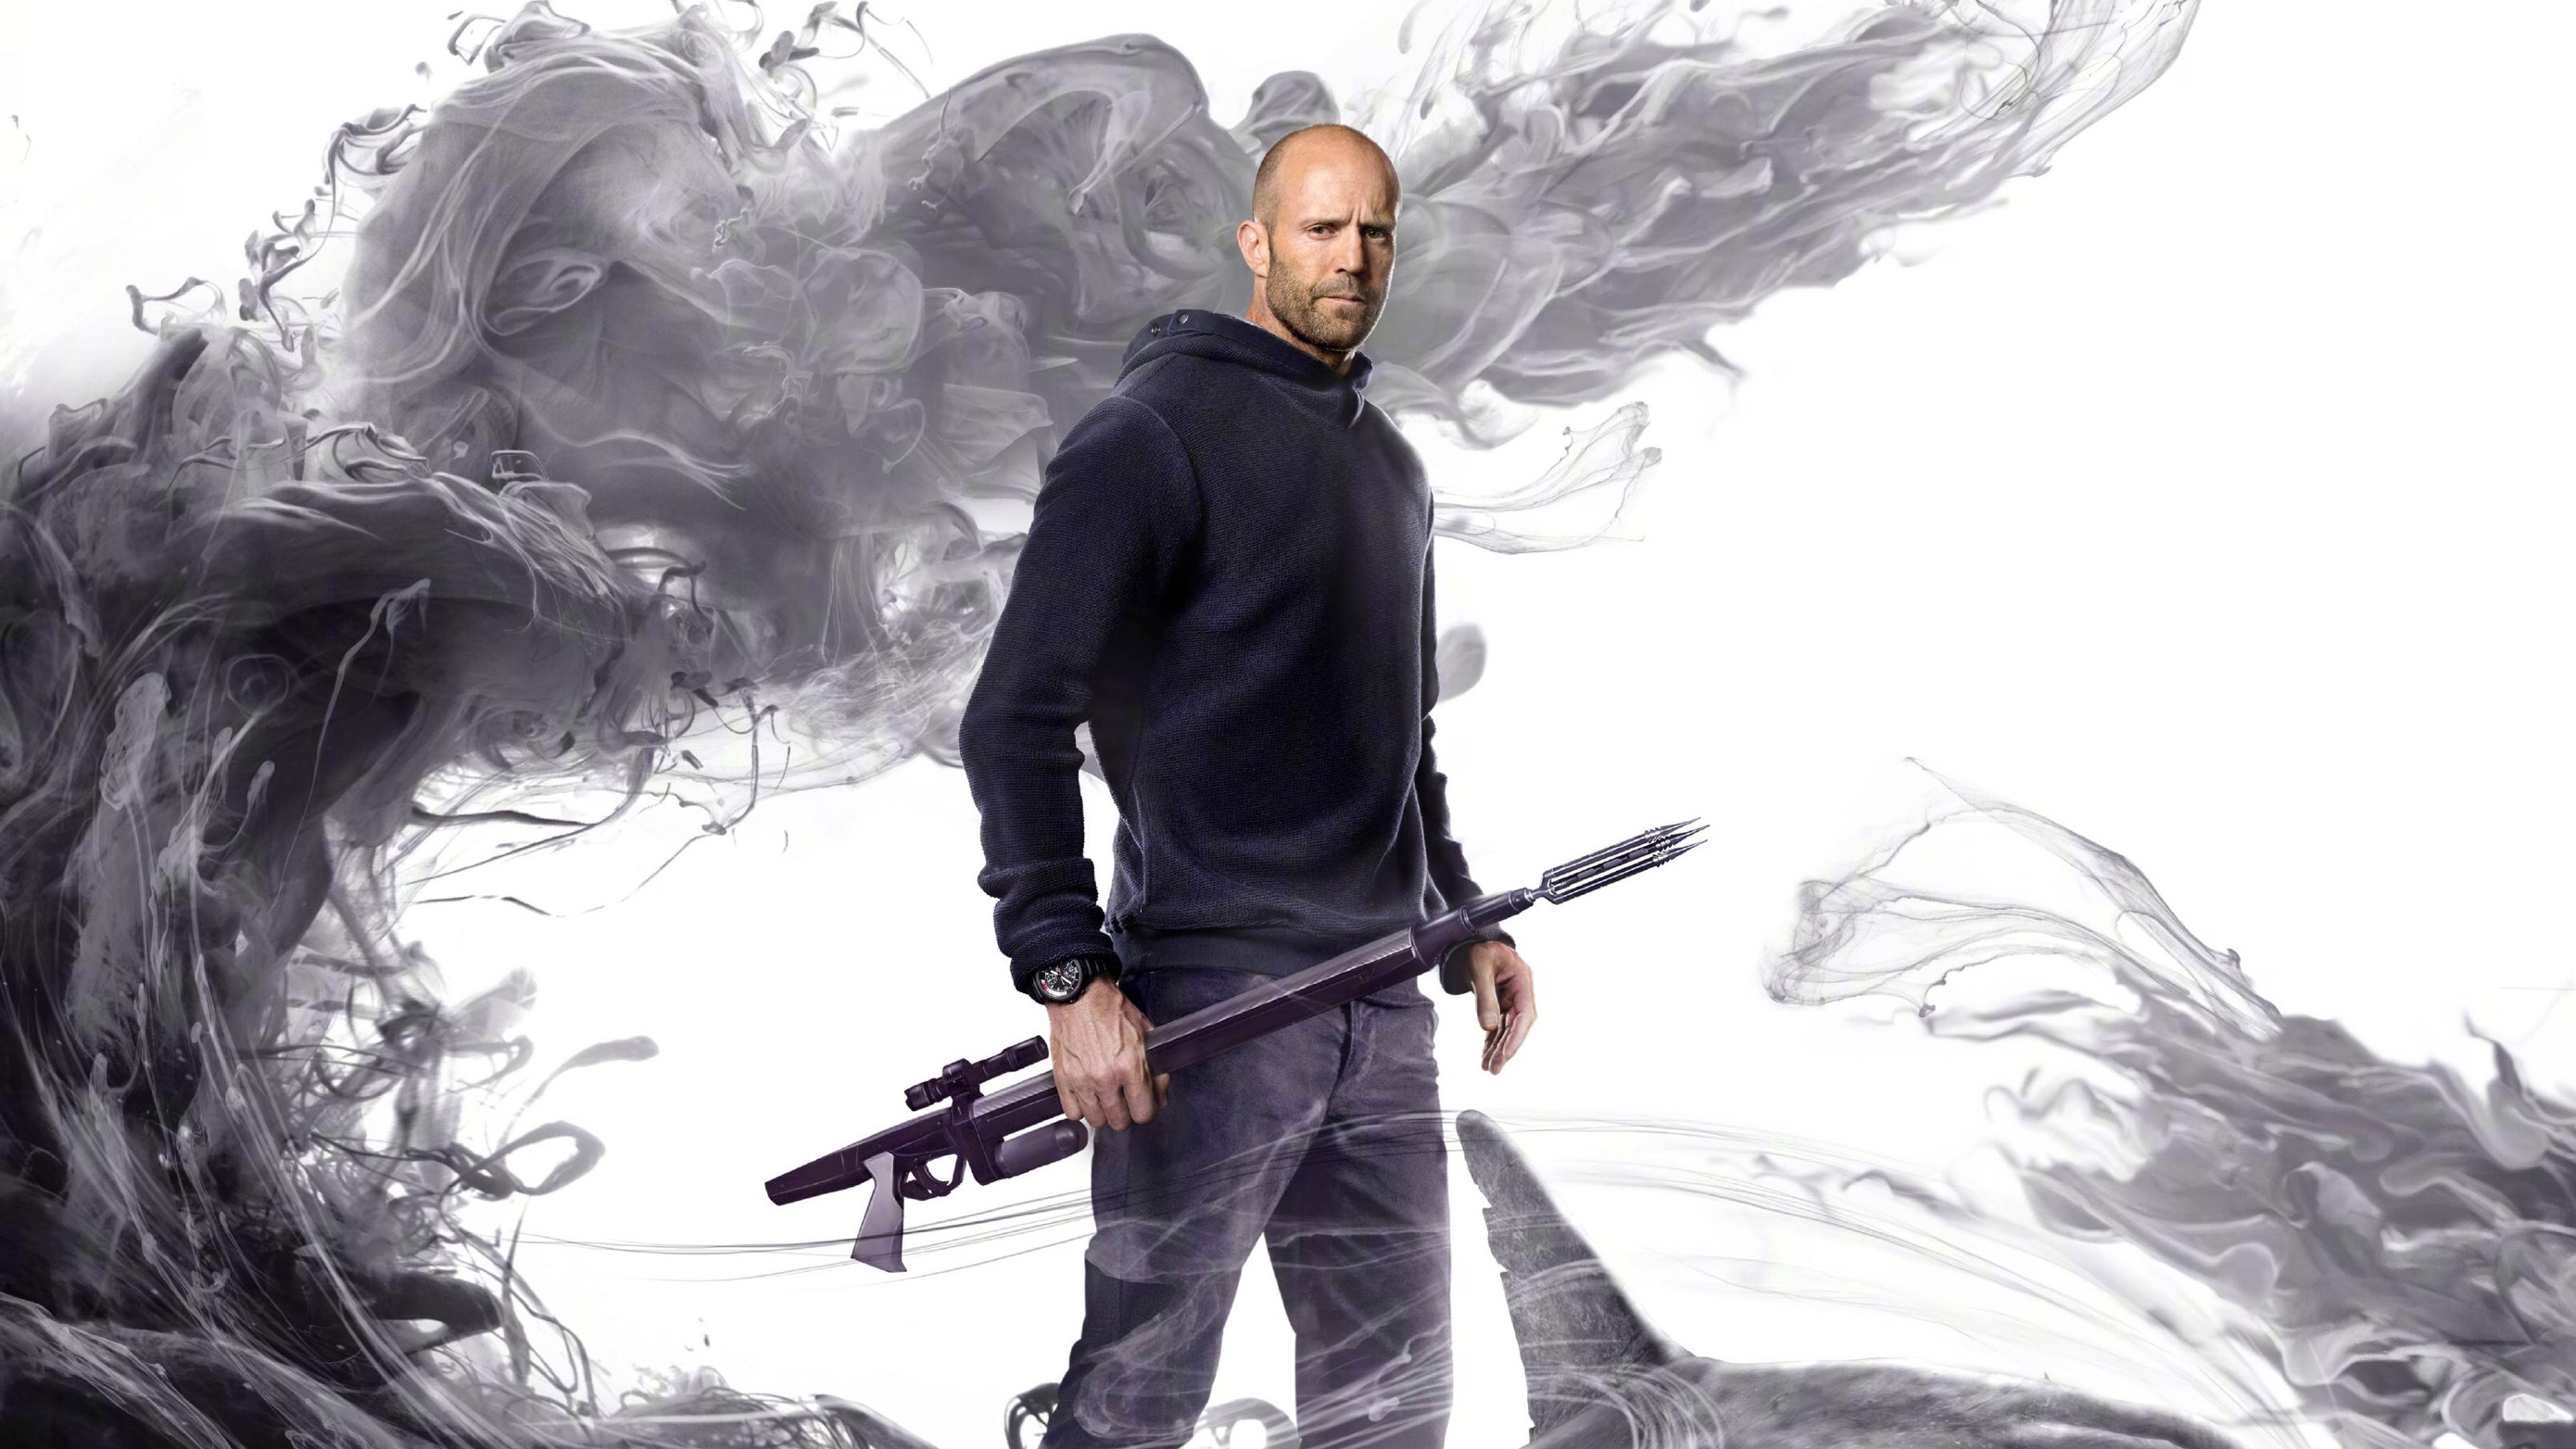 2048x2048 Anthem Ipad Air Hd 4k Wallpapers Images: 2048x2048 Jason Statham As Jonas Taylor In The Meg Movie